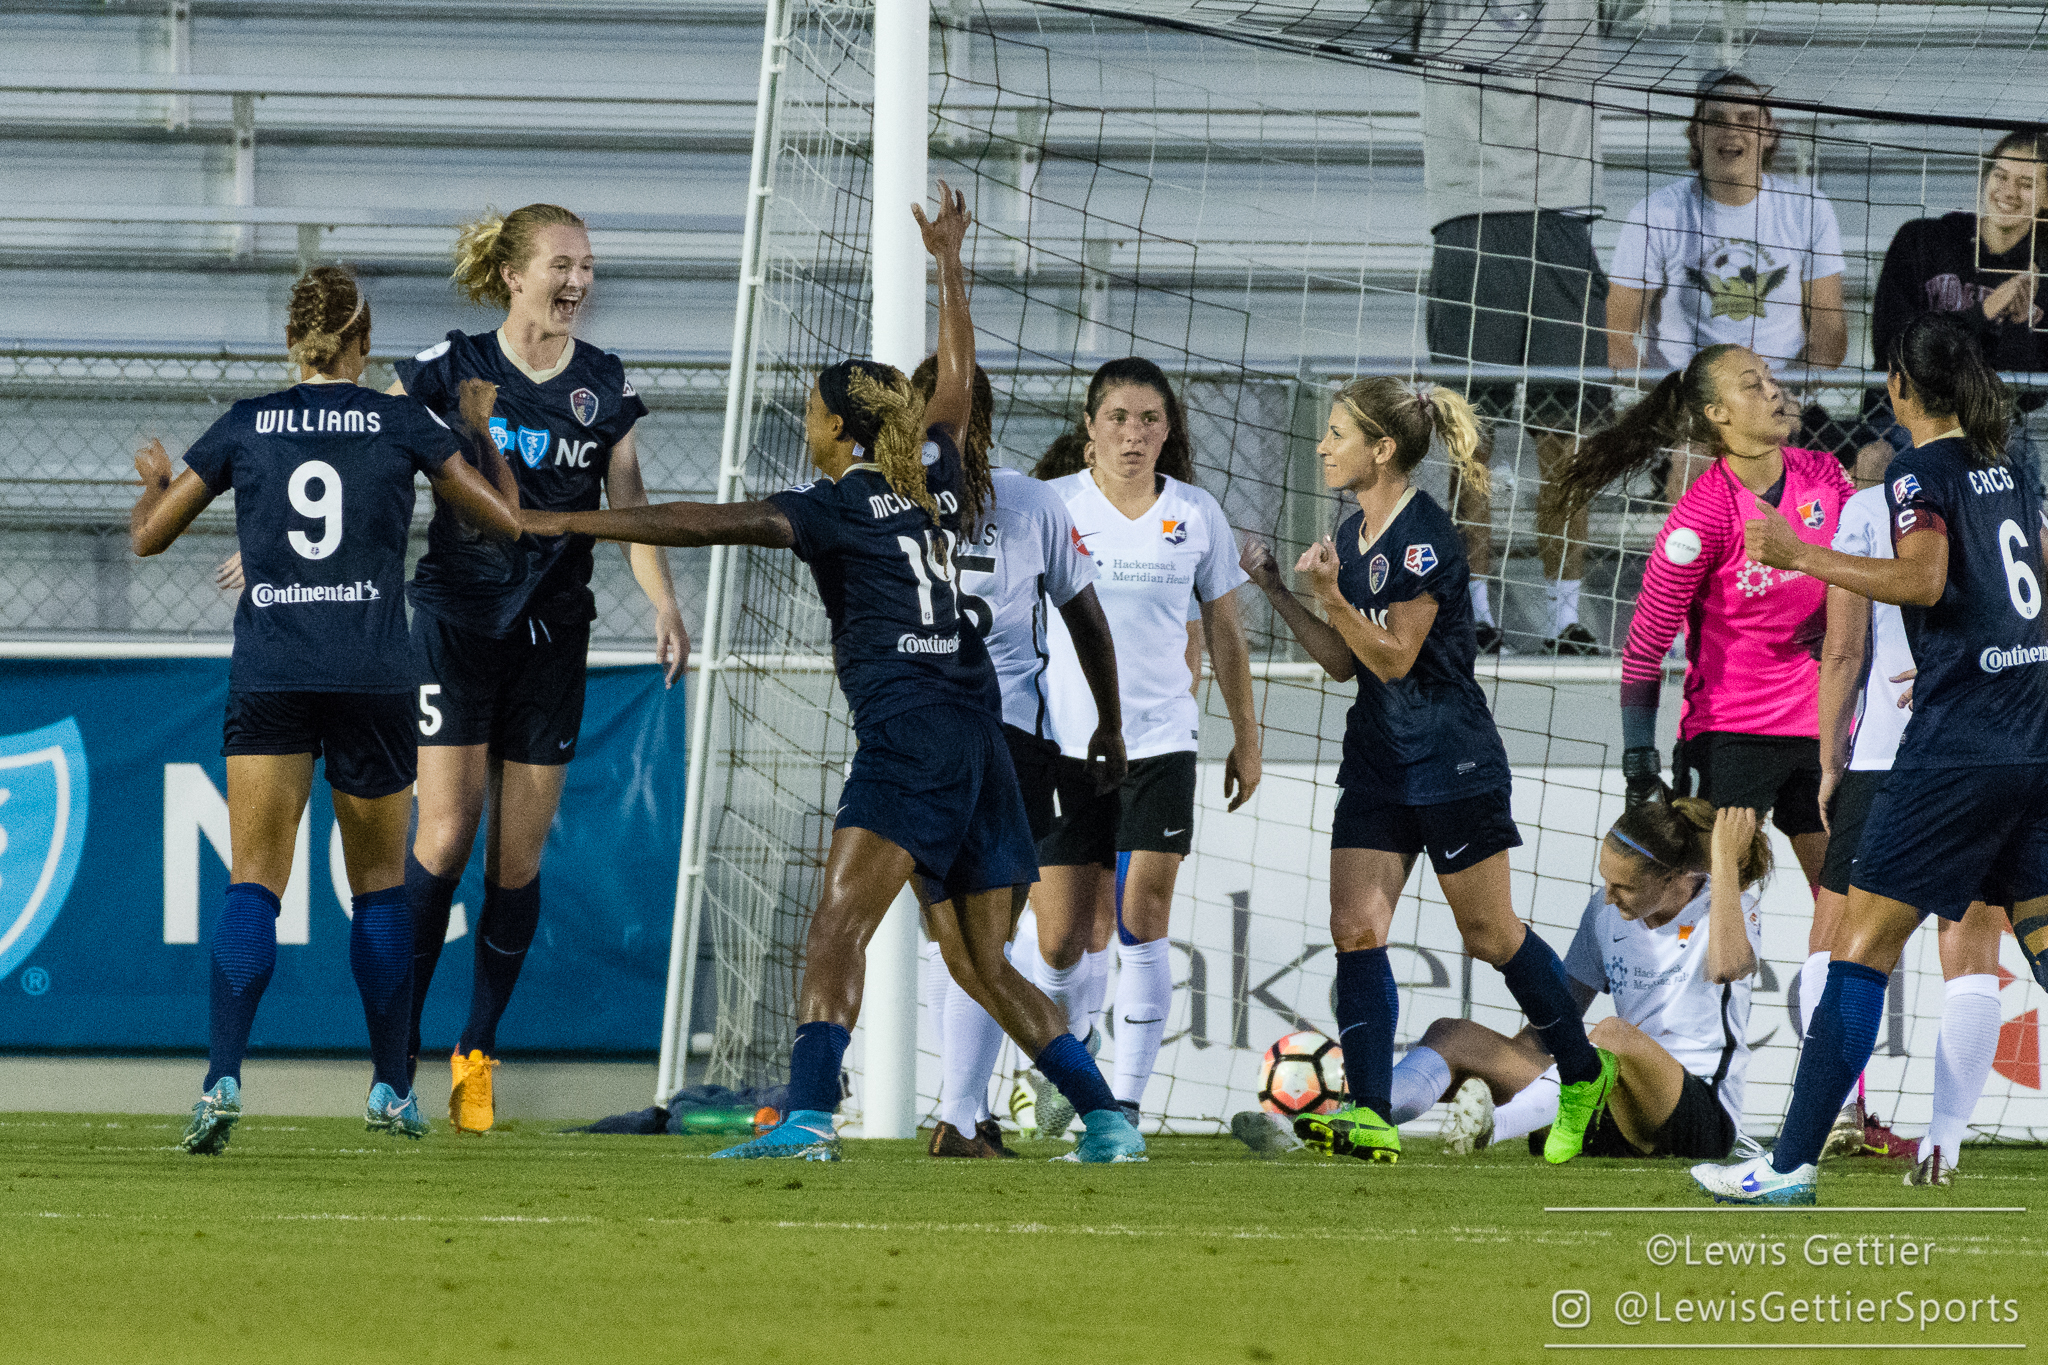 Samantha Mewis celebrates her goal during a match between the NC Courage and Sky Blue FC in Cary, NC in Week 7 of the 2017 NWSL season. Photo by Lewis Gettier.